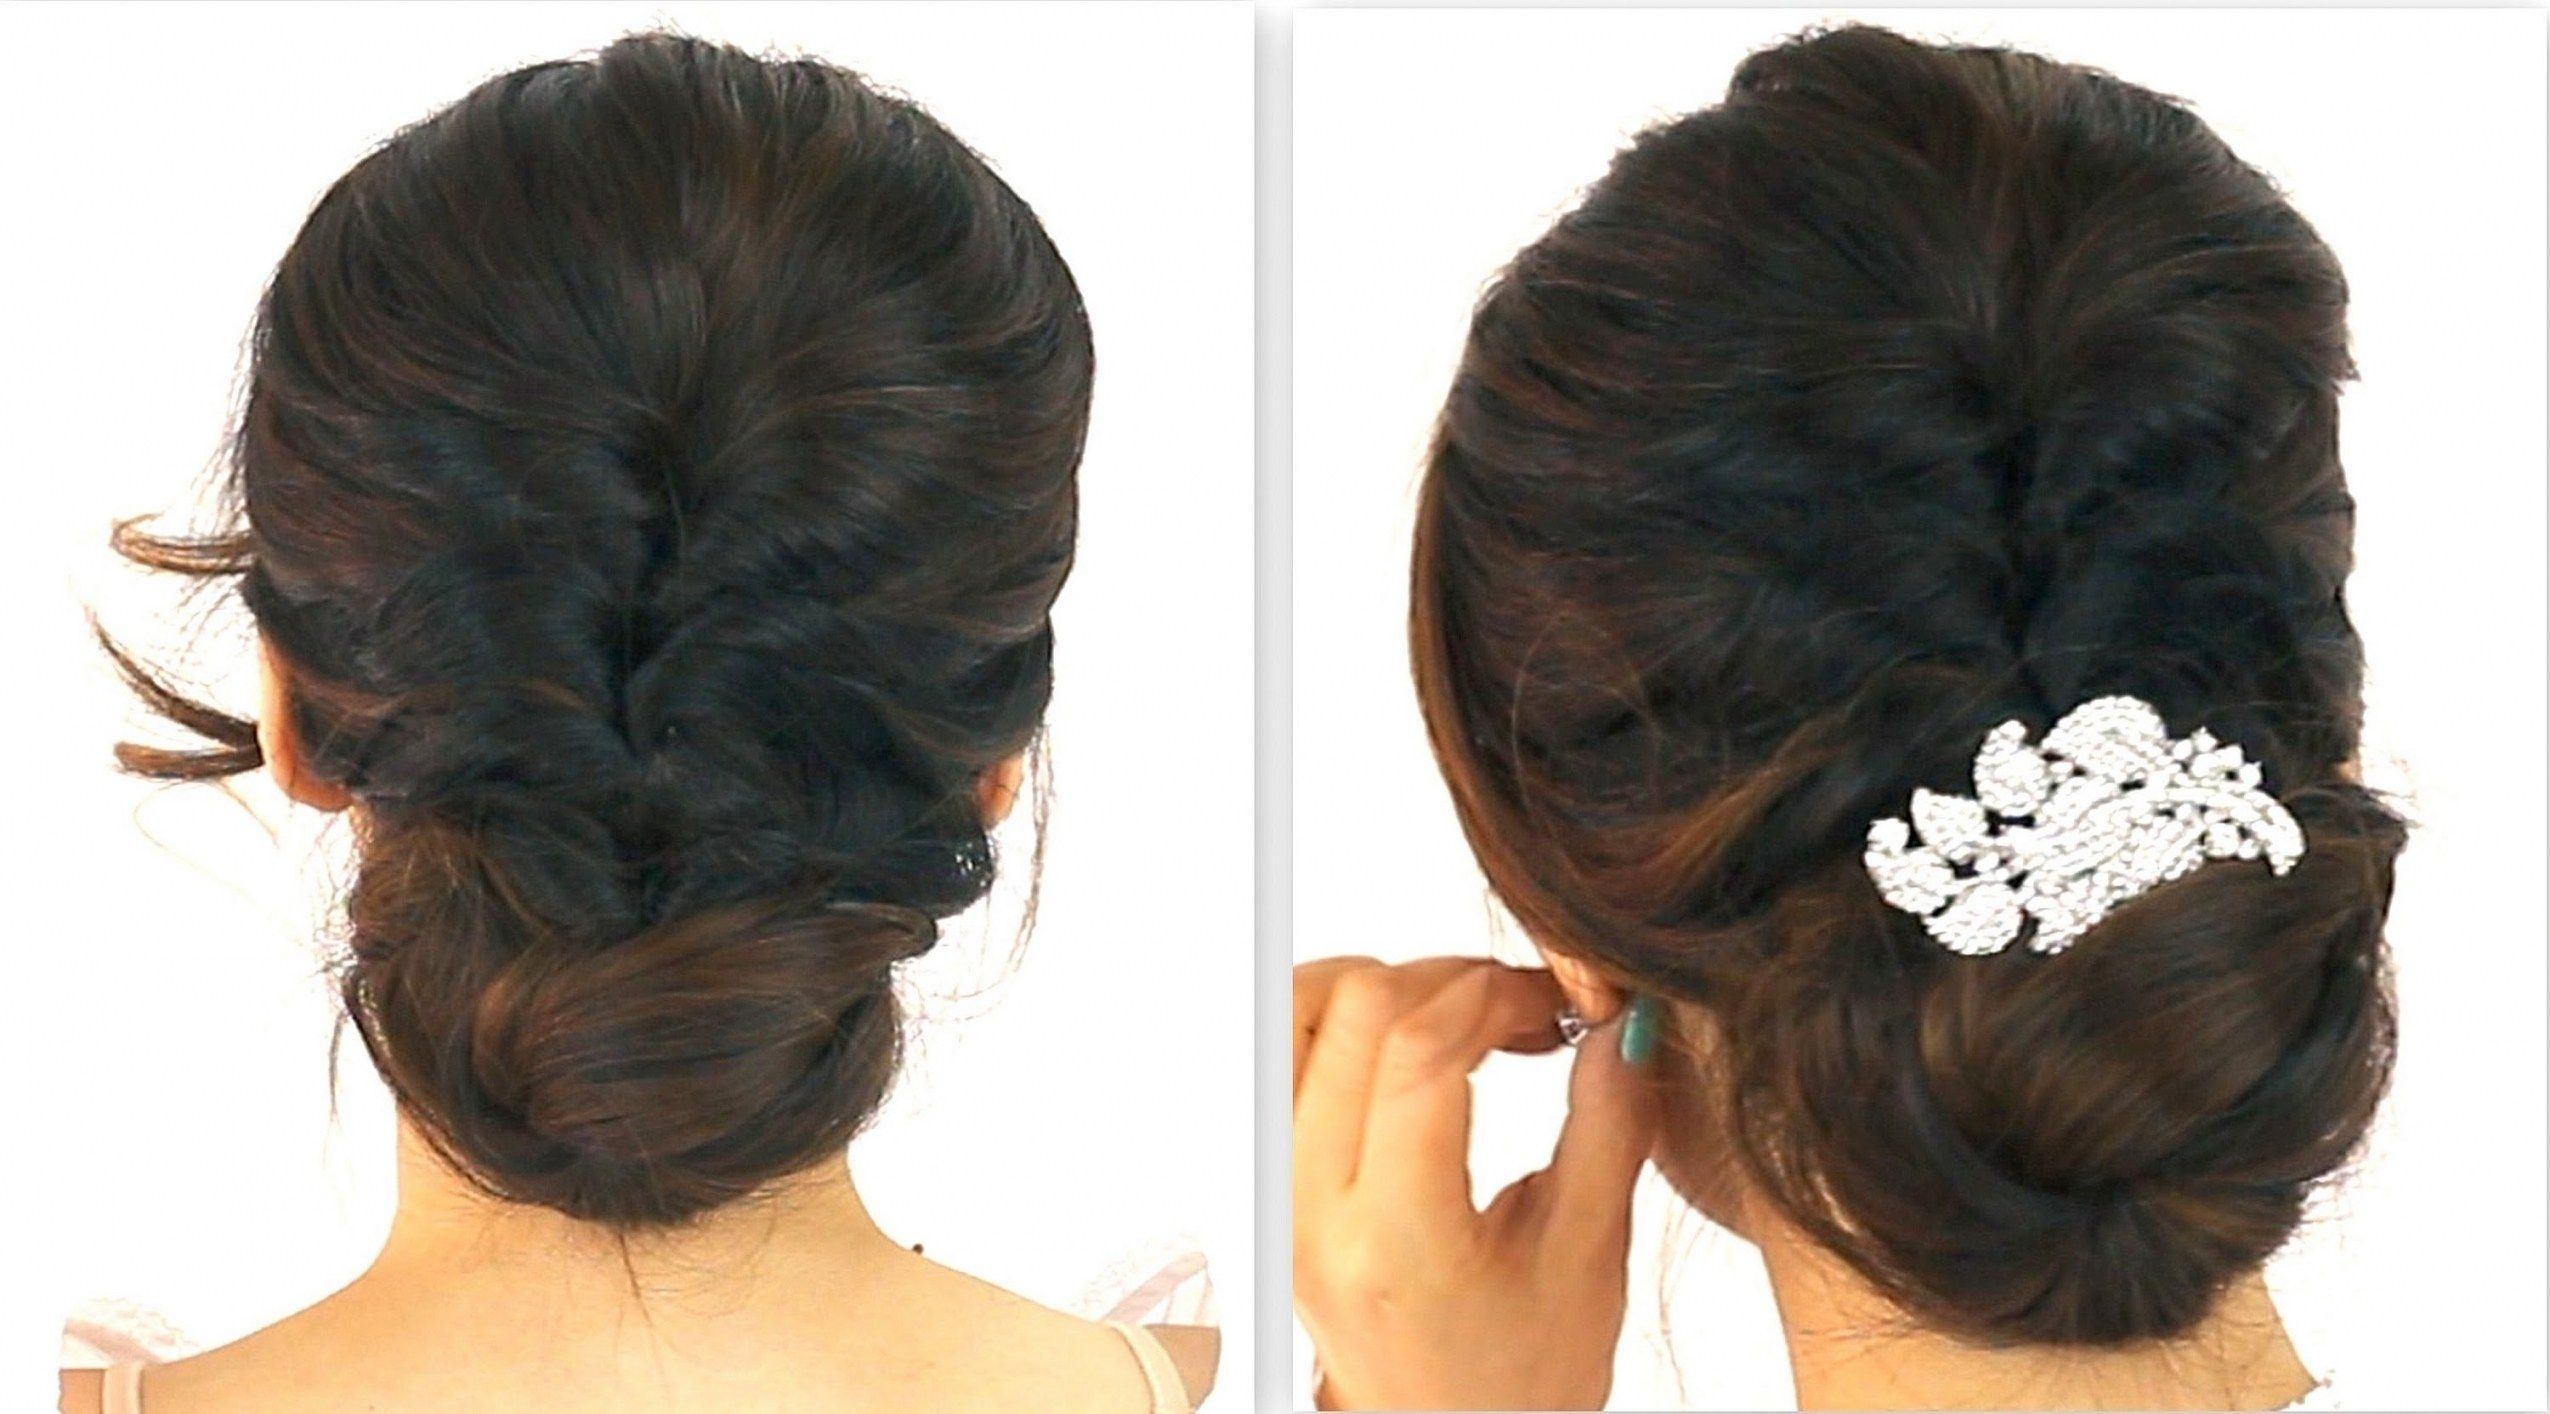 Indian Wedding Party Hairstyles For Short Hair | Hairstyles inside Indian Hairstyle Short Hair